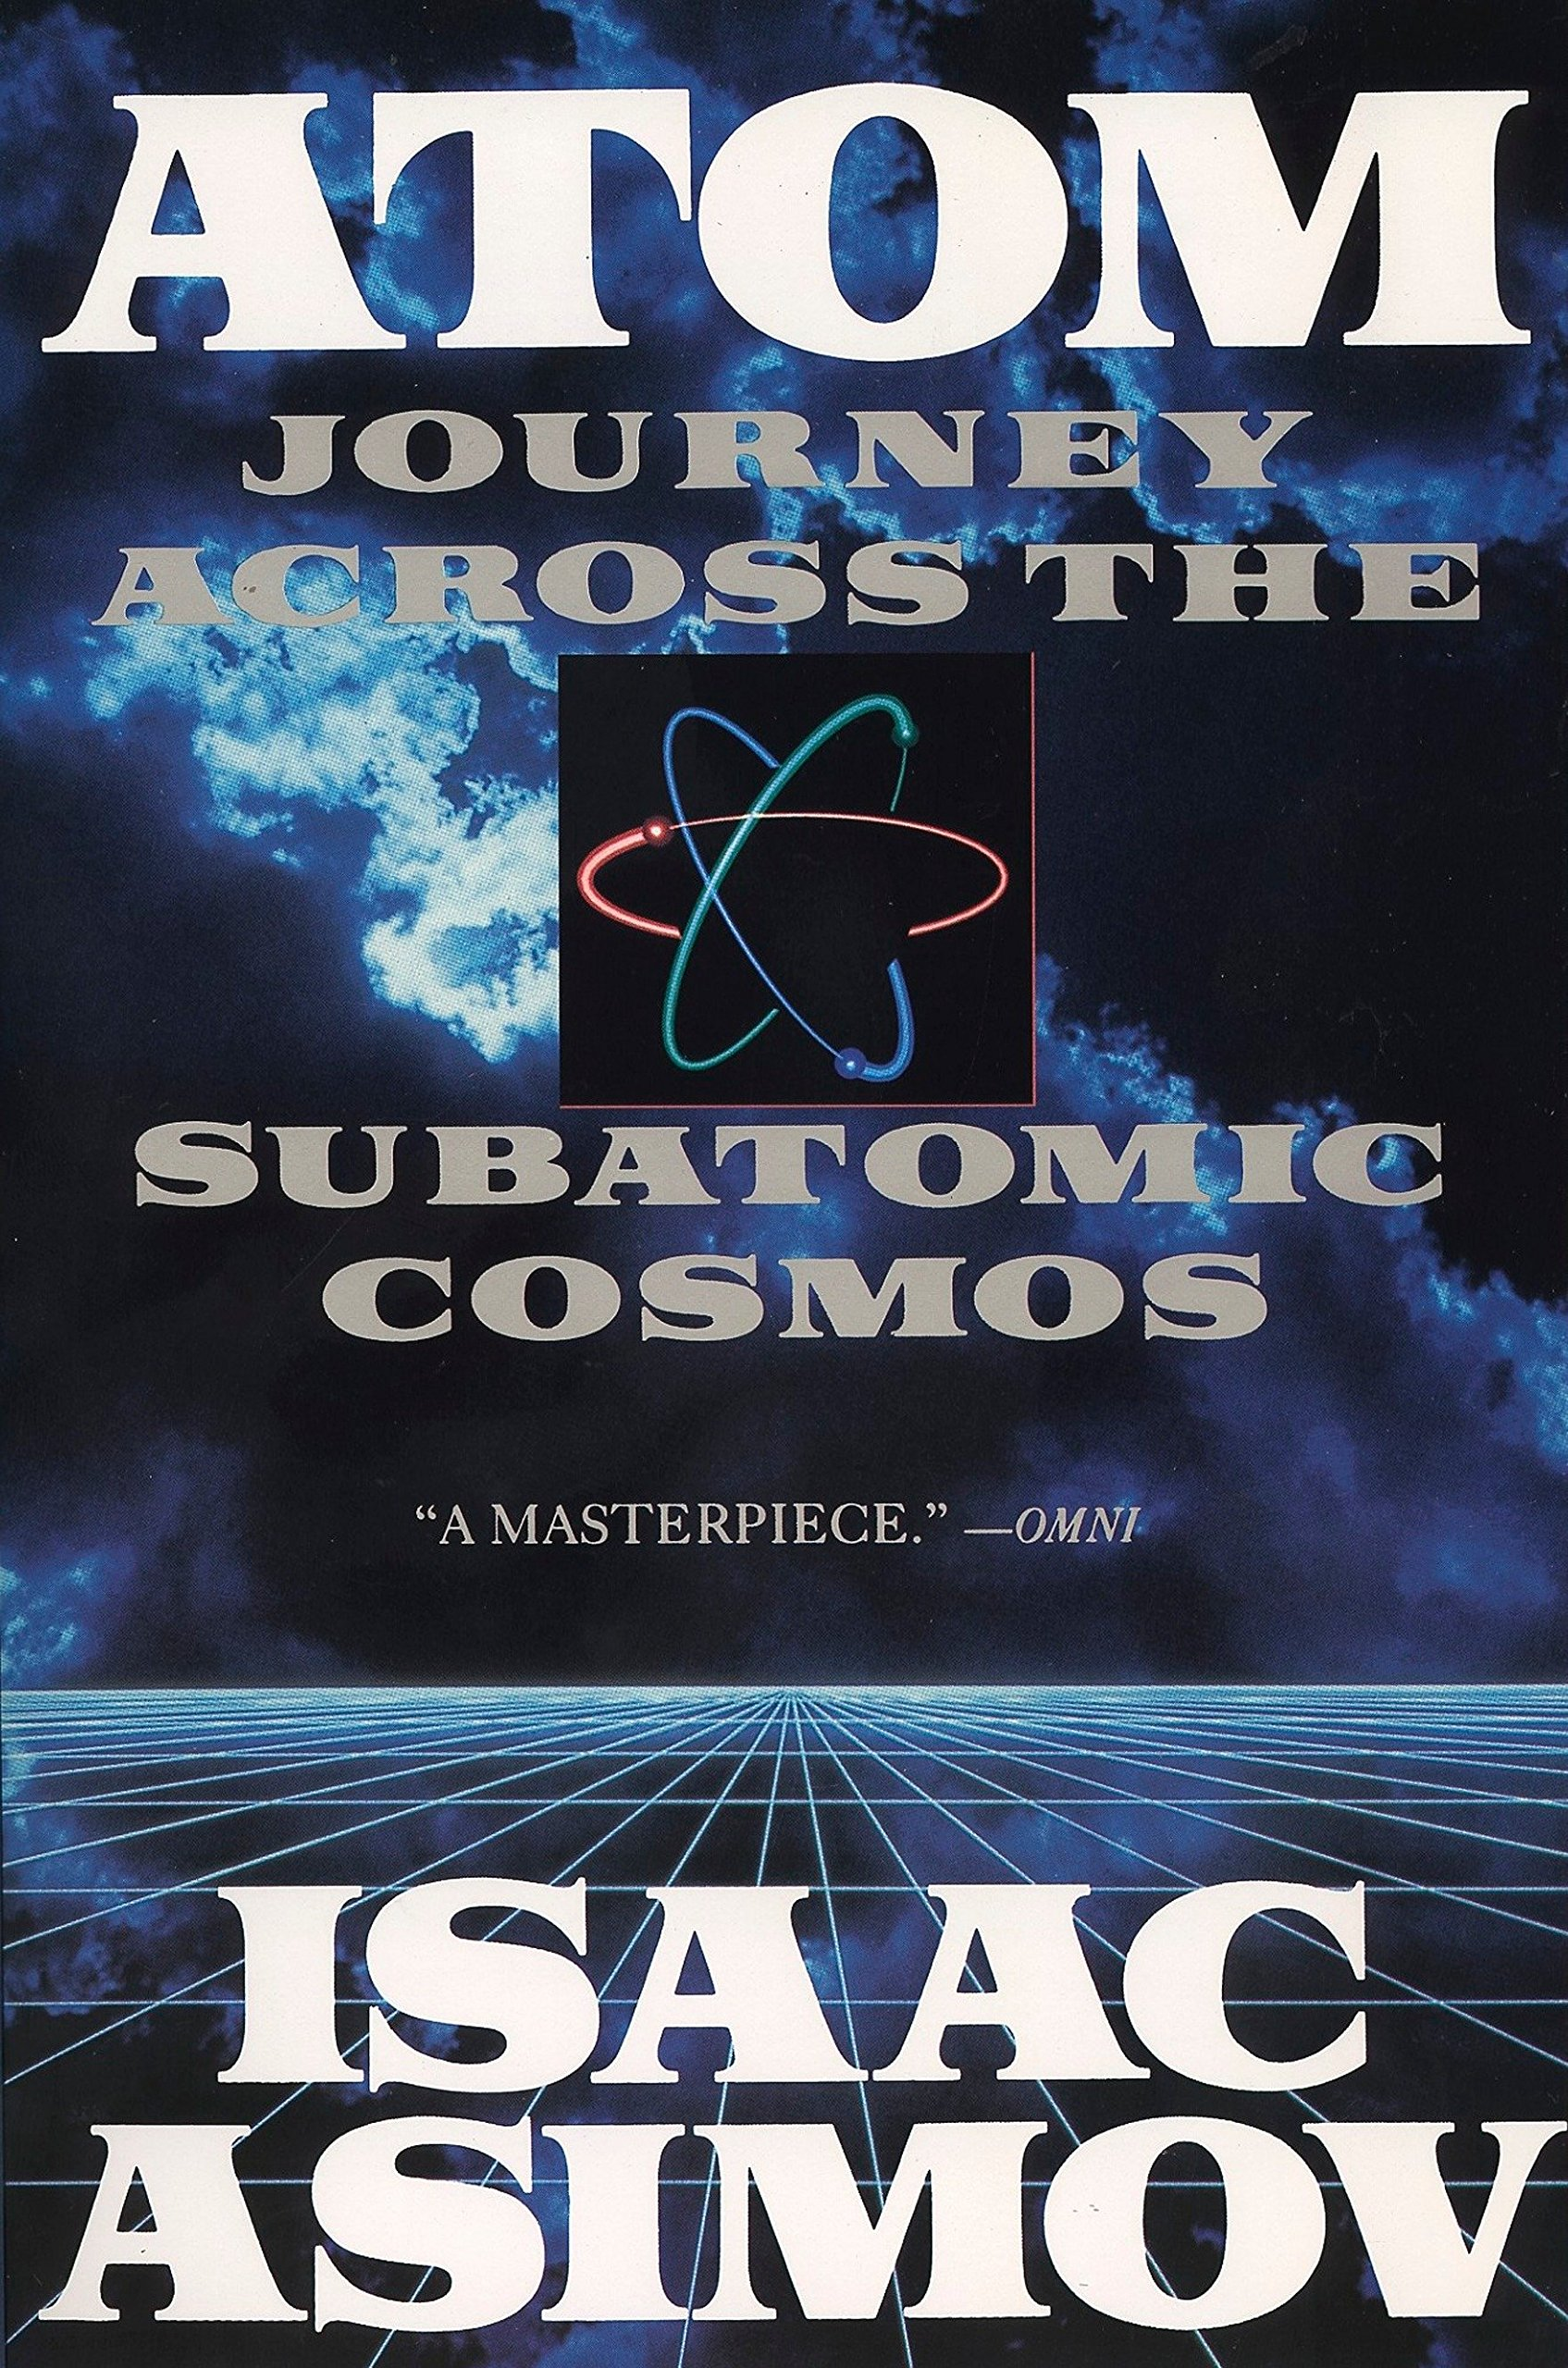 Atom: Journey Across the Subatomic Cosmos (Truman Talley)